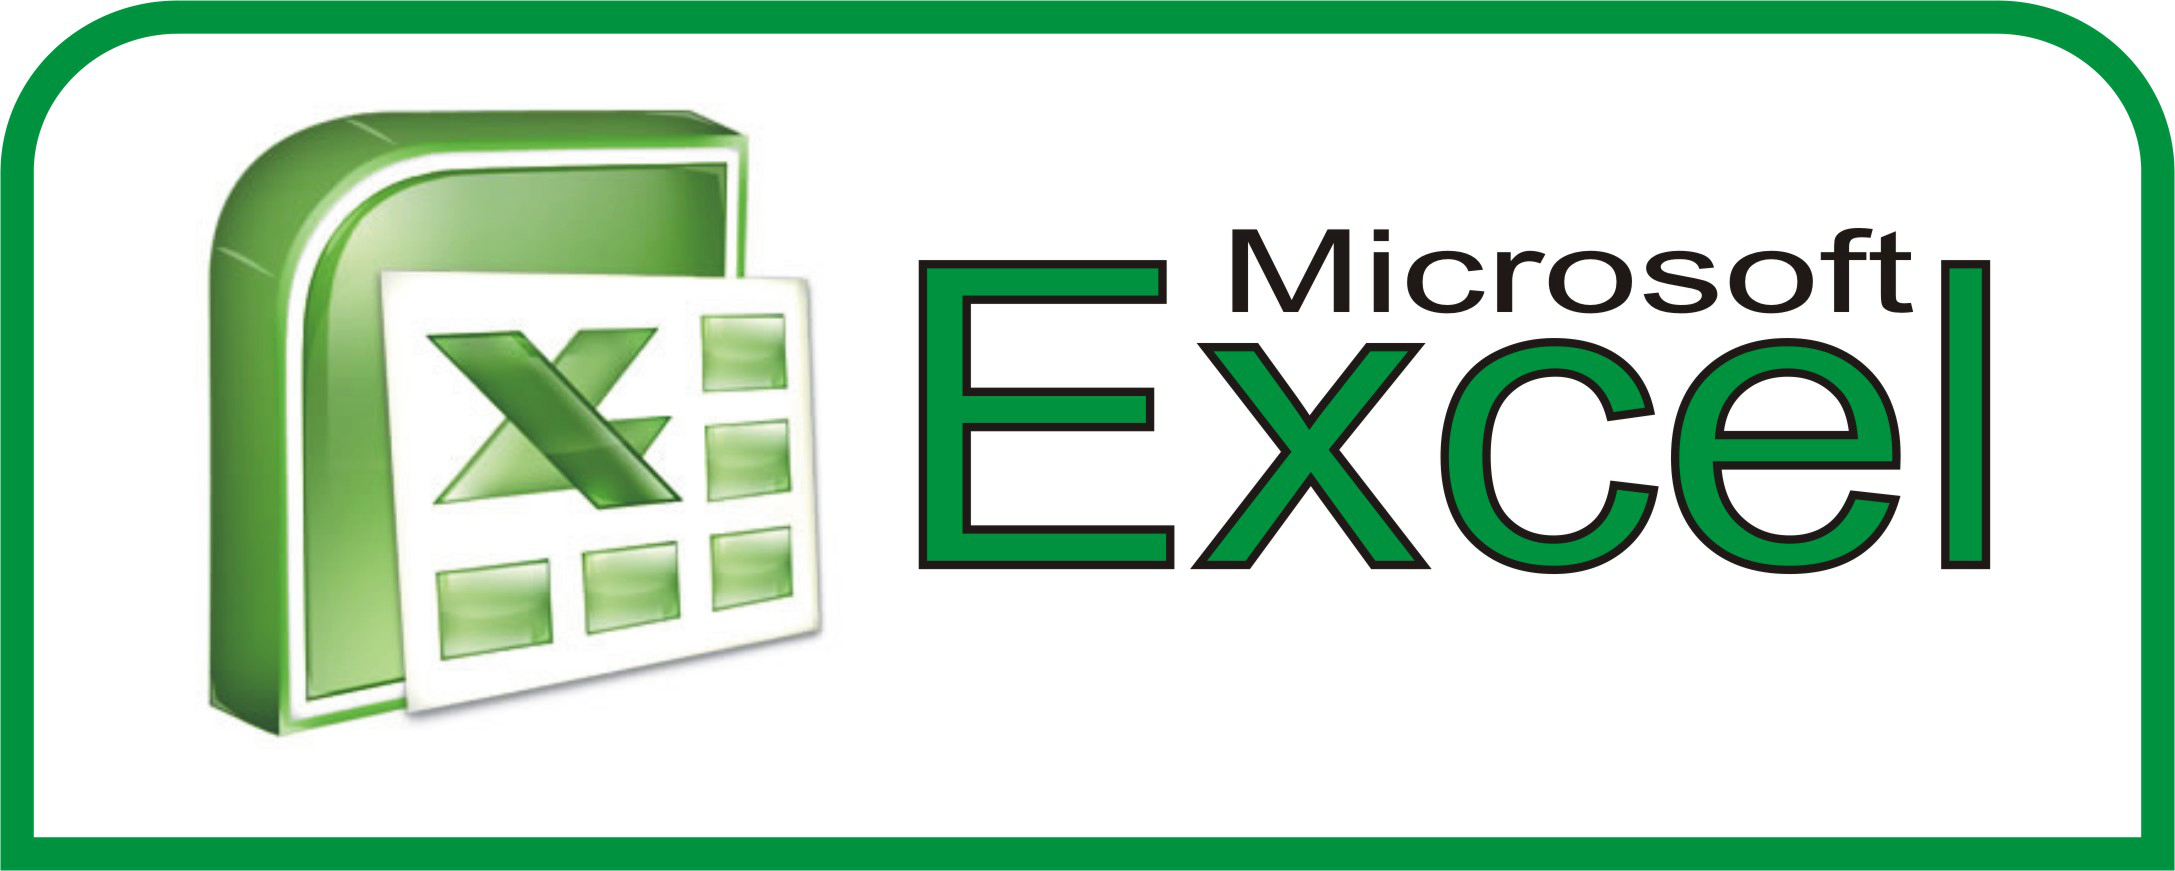 Ediblewildsus  Sweet  Excel Shortcuts You Probably Didnt Know About  Techdissected With Glamorous Excel Vba If Statement Besides How To Find Mean On Excel Furthermore Excel In School With Extraordinary How To Protect A Cell In Excel Also Excel Banded Rows In Addition Excel New Line And How To Delete All Empty Rows In Excel As Well As Excel Report Template Additionally Rand Function In Excel From Techdissectedcom With Ediblewildsus  Glamorous  Excel Shortcuts You Probably Didnt Know About  Techdissected With Extraordinary Excel Vba If Statement Besides How To Find Mean On Excel Furthermore Excel In School And Sweet How To Protect A Cell In Excel Also Excel Banded Rows In Addition Excel New Line From Techdissectedcom